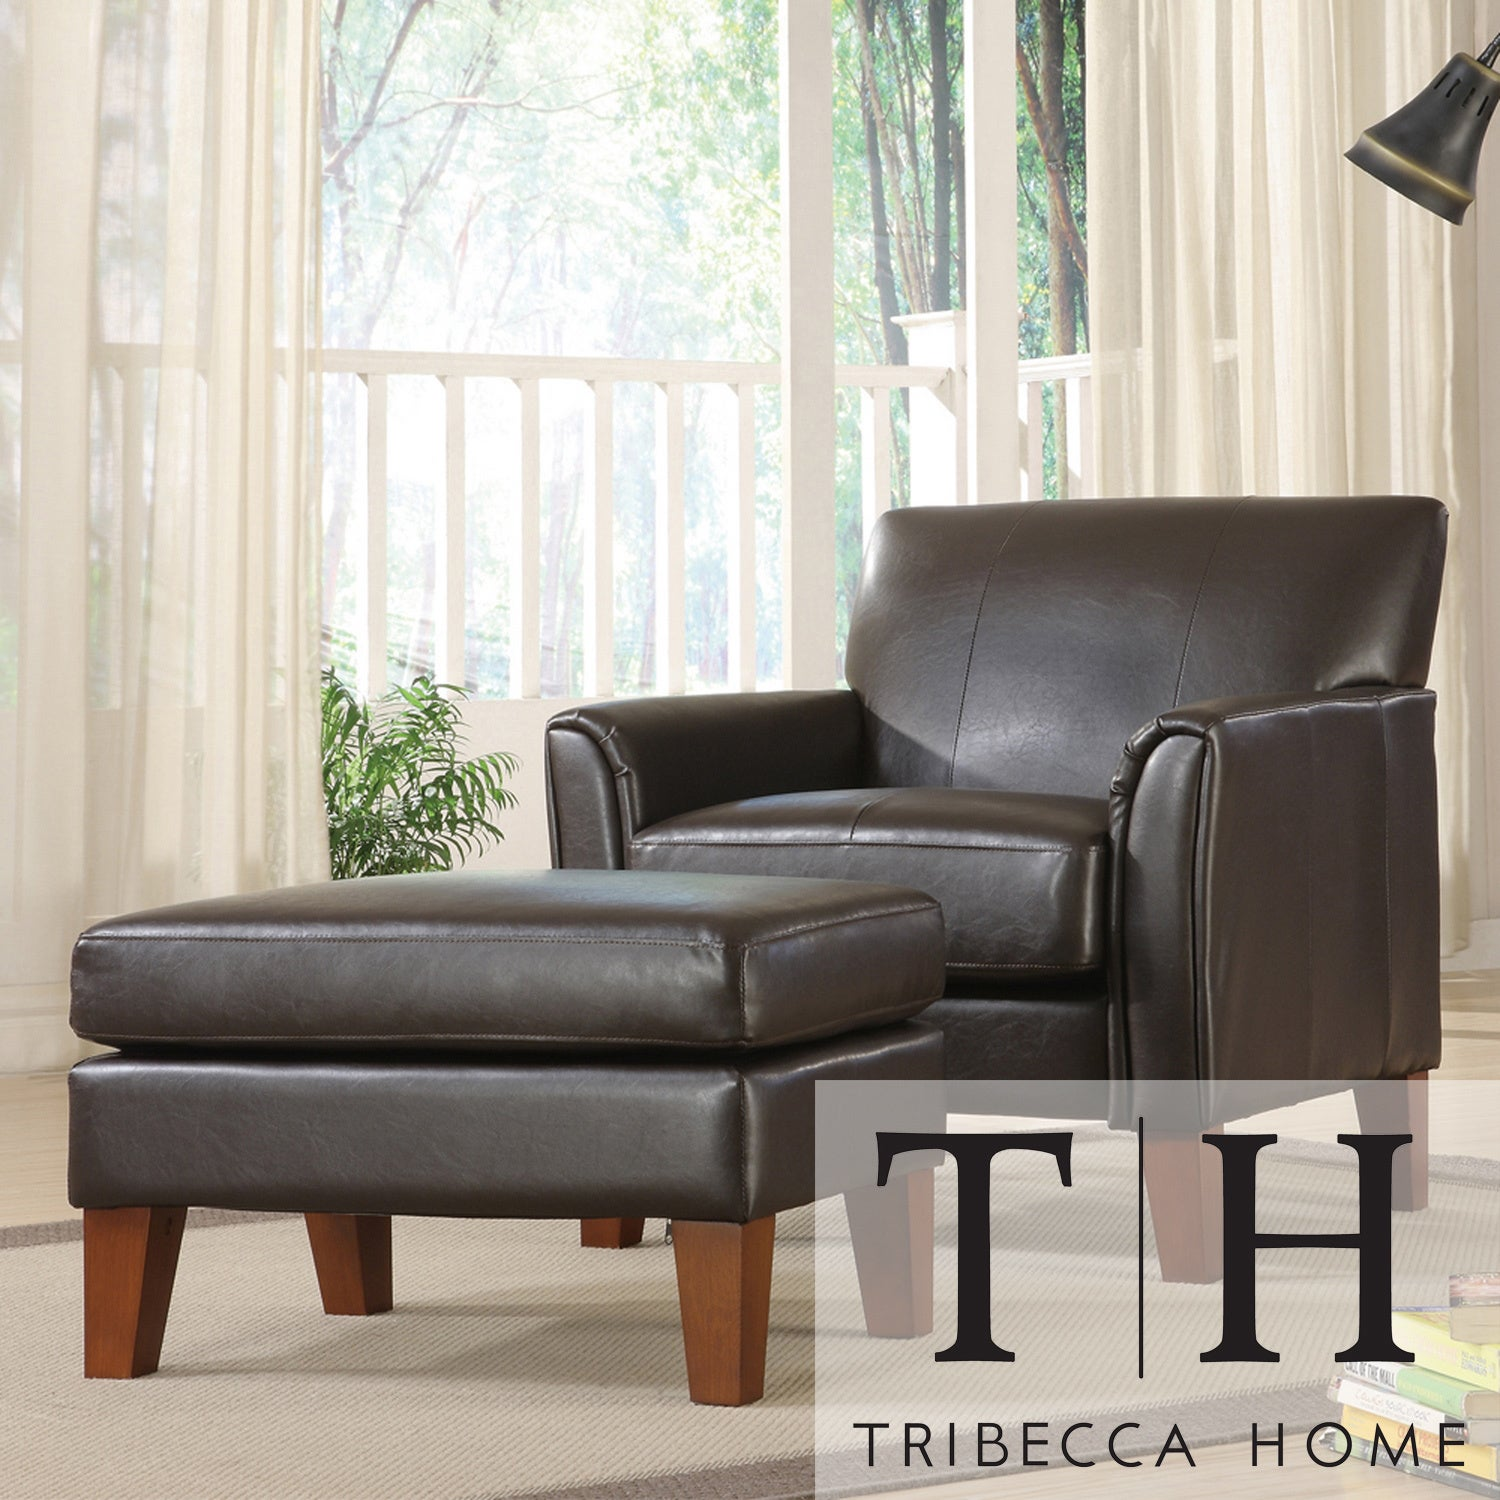 TRIBECCA HOME Uptown Dark Brown Faux Leather Chair and Ottoman at Sears.com